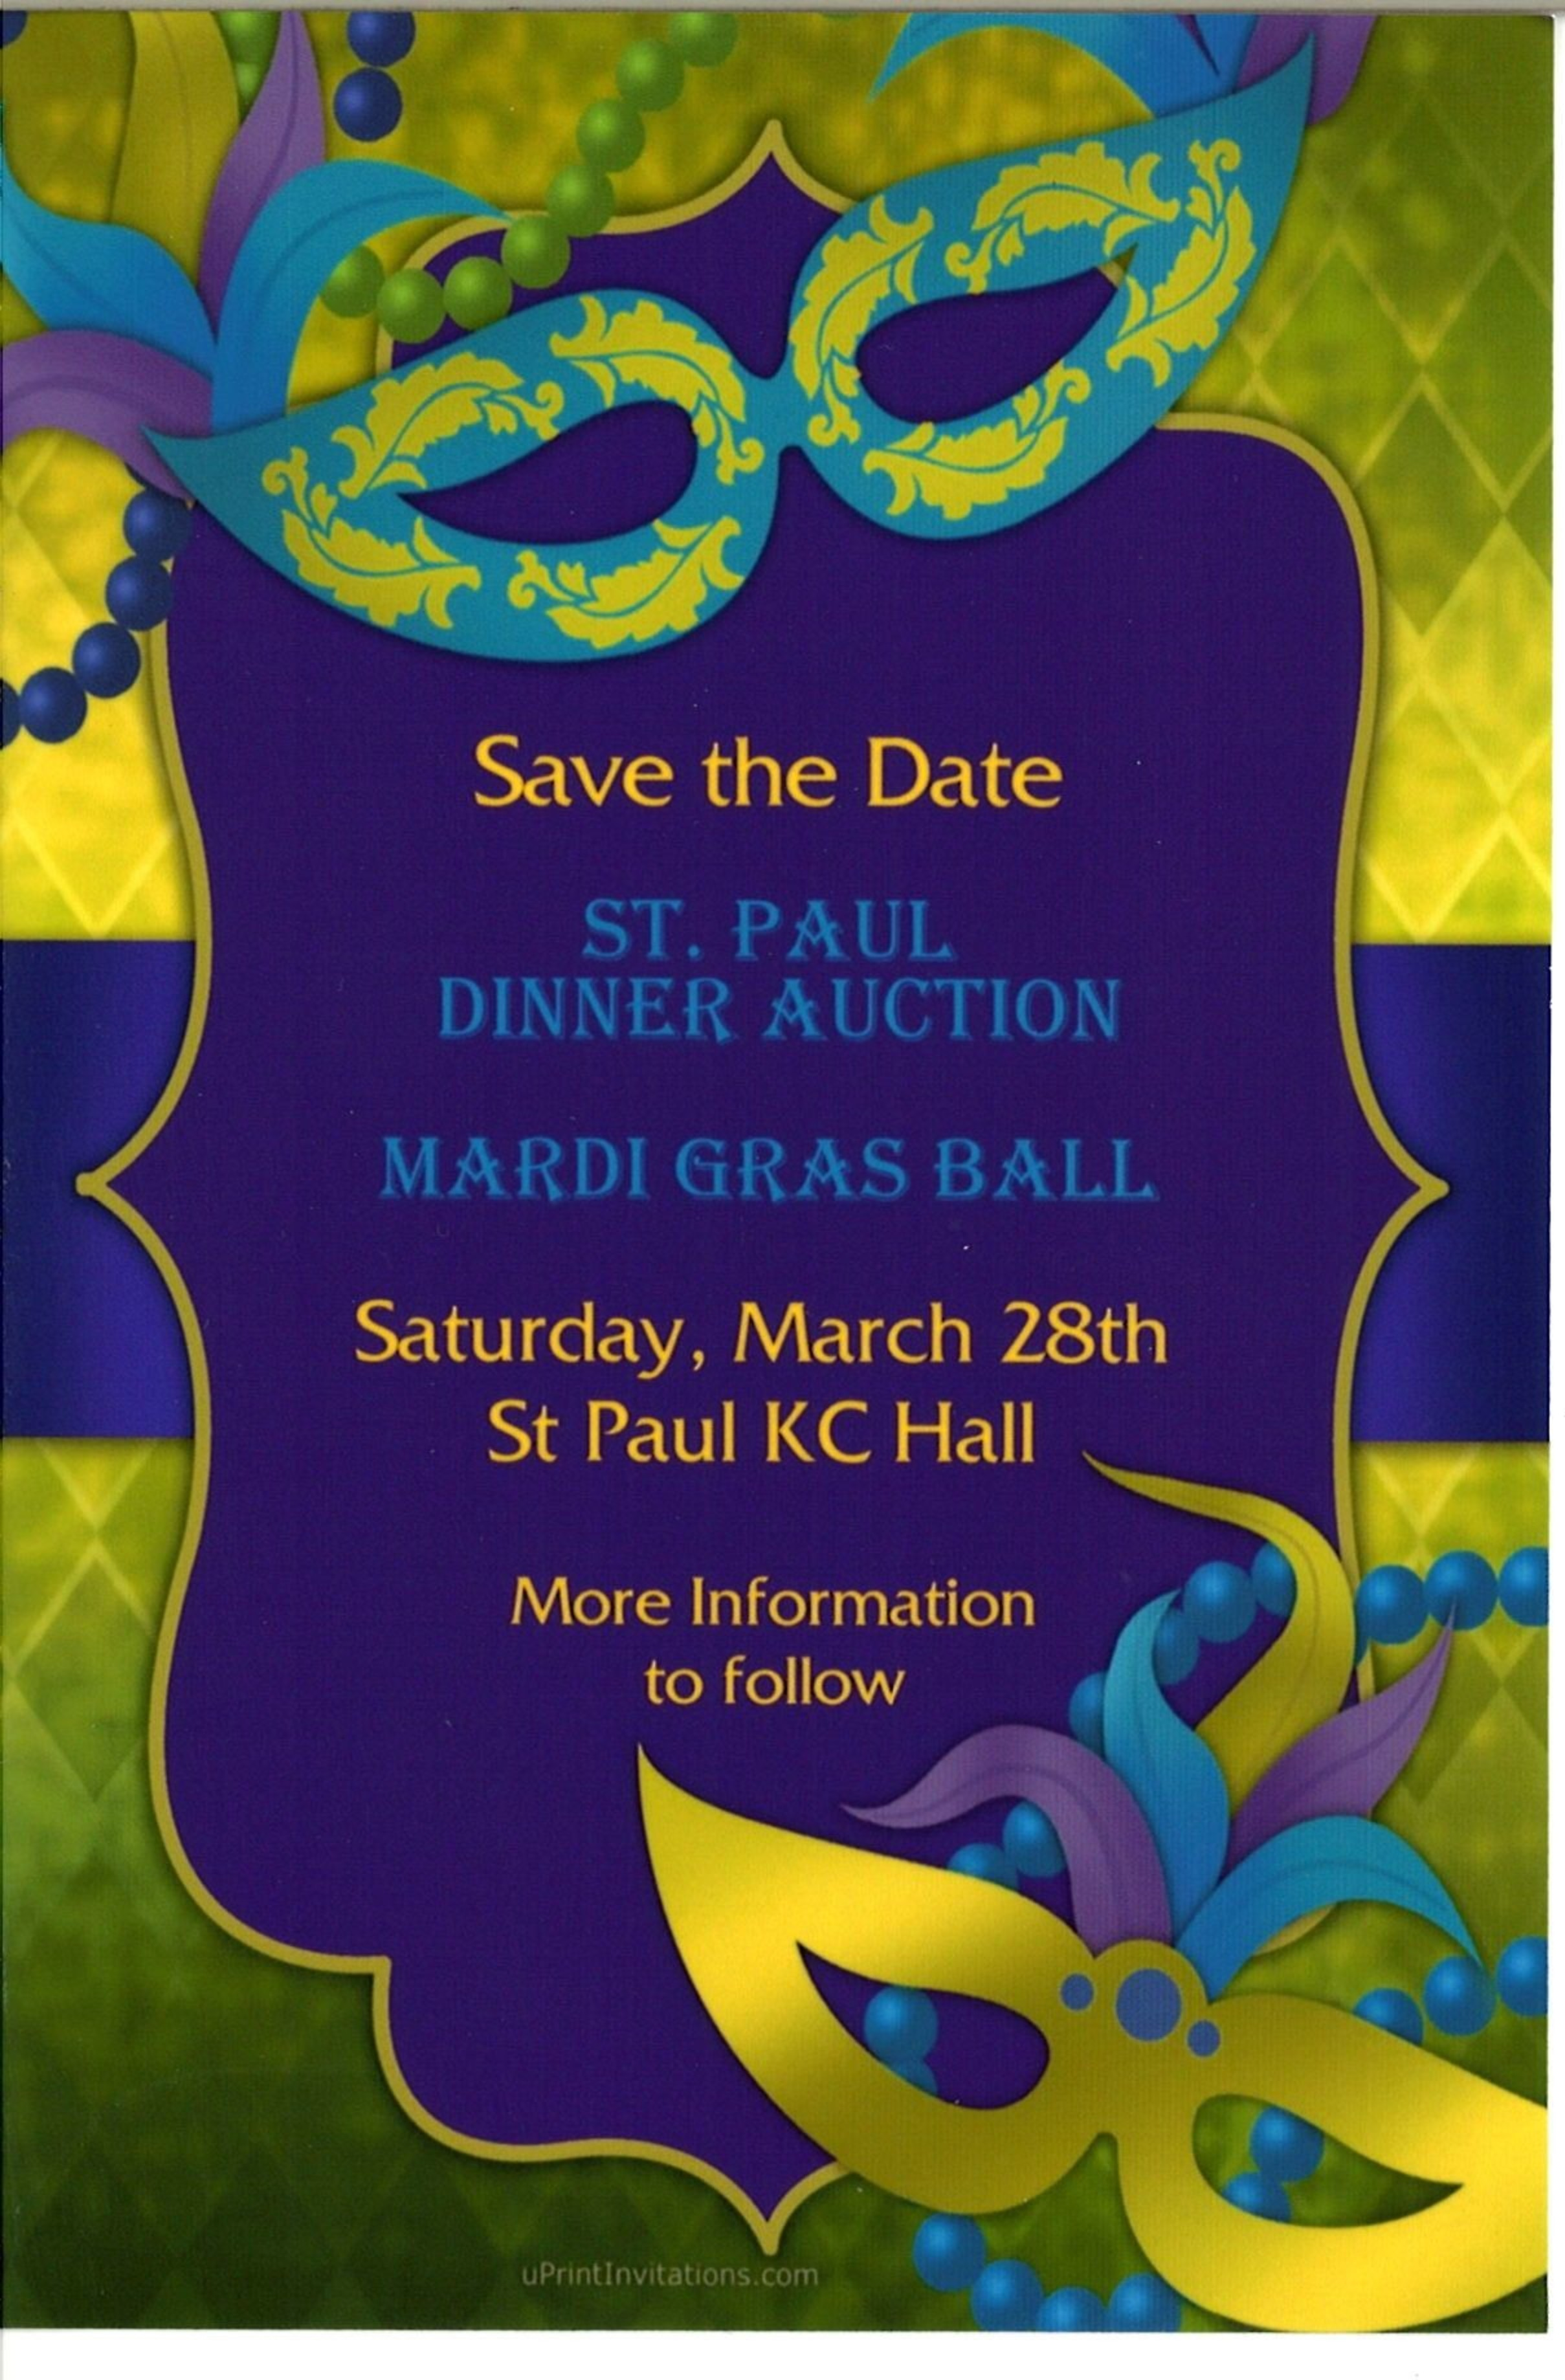 Save Date Auction 2020 20191118155920 00001